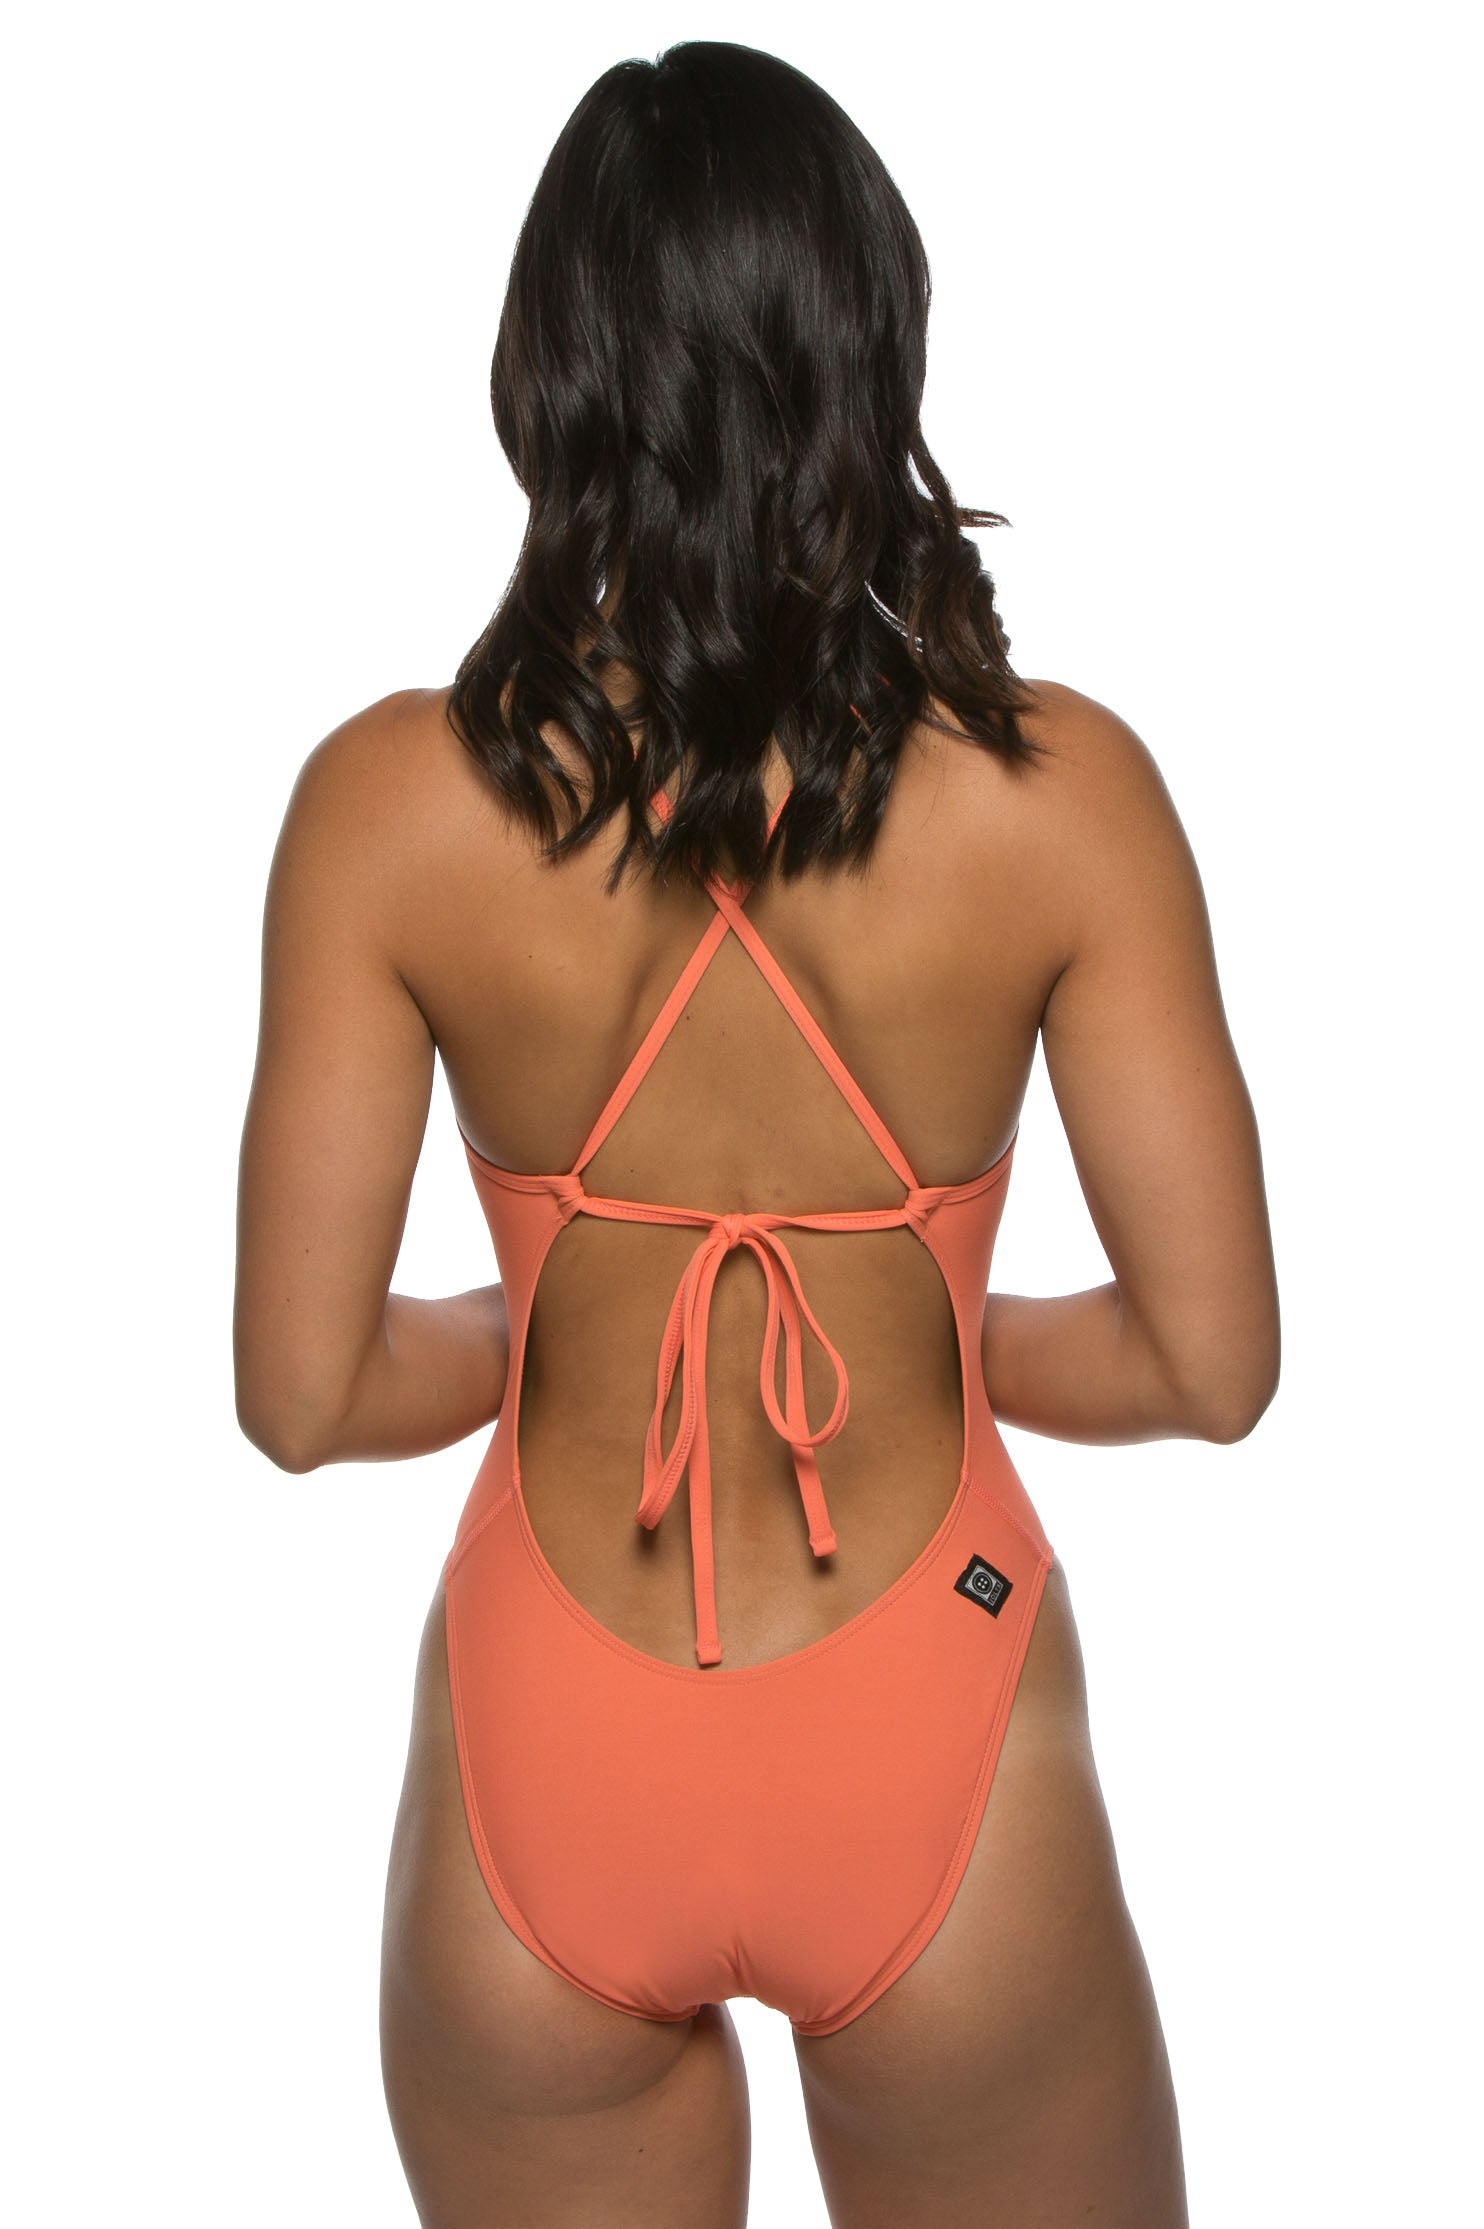 07e0ee126f8 Jackson 2 Tie-Back One-Piece Swimsuit (Lights) – Jolyn